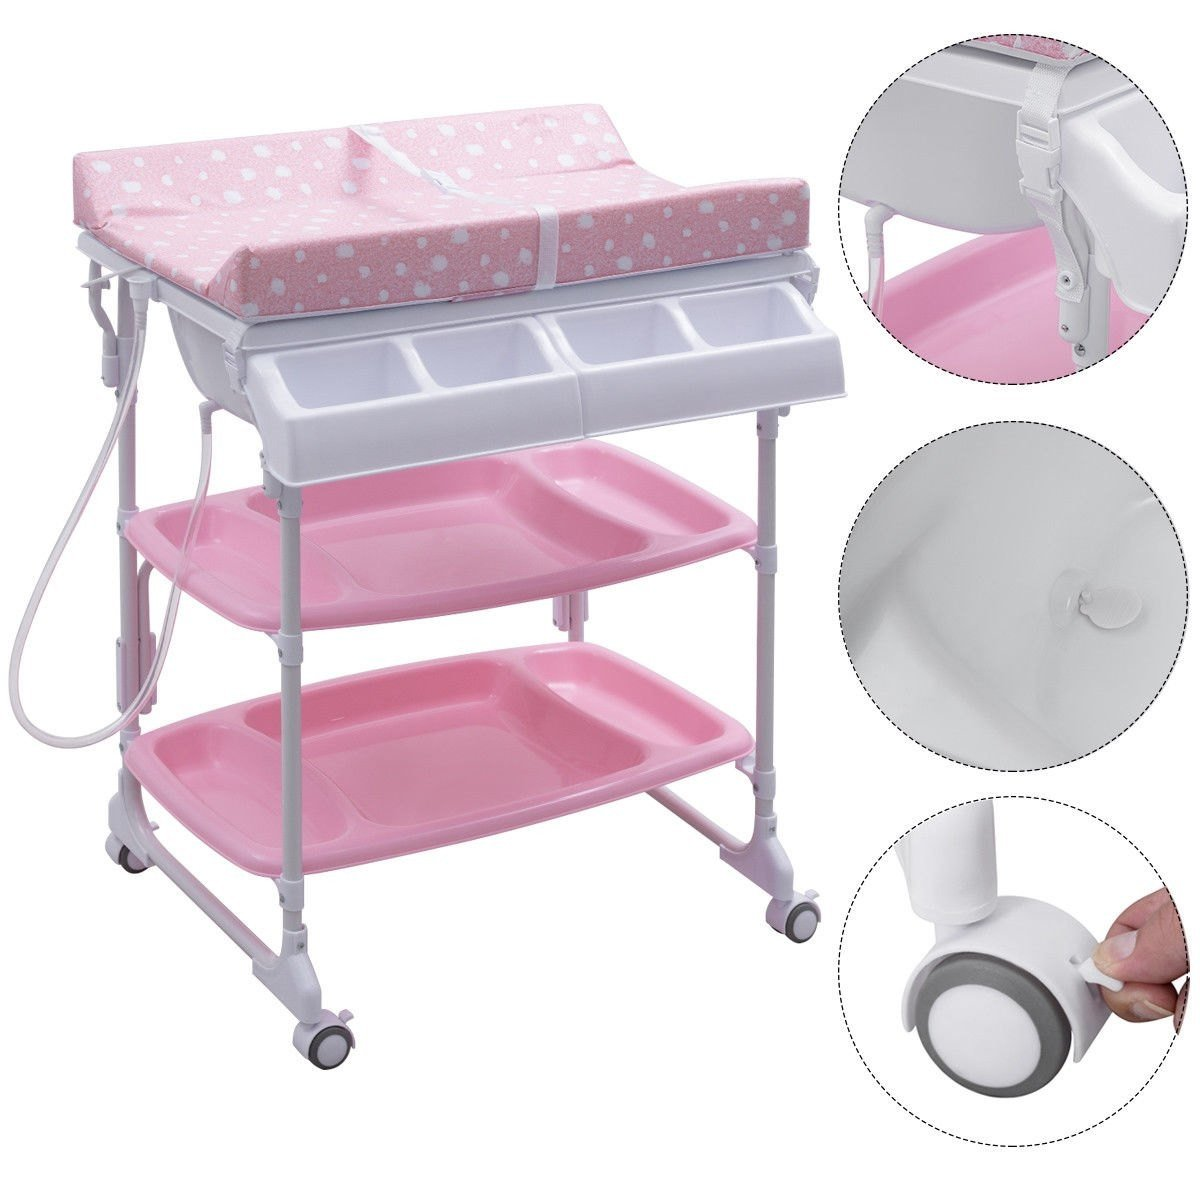 Baby Infant Bath Changing Table w/ Tube Pink